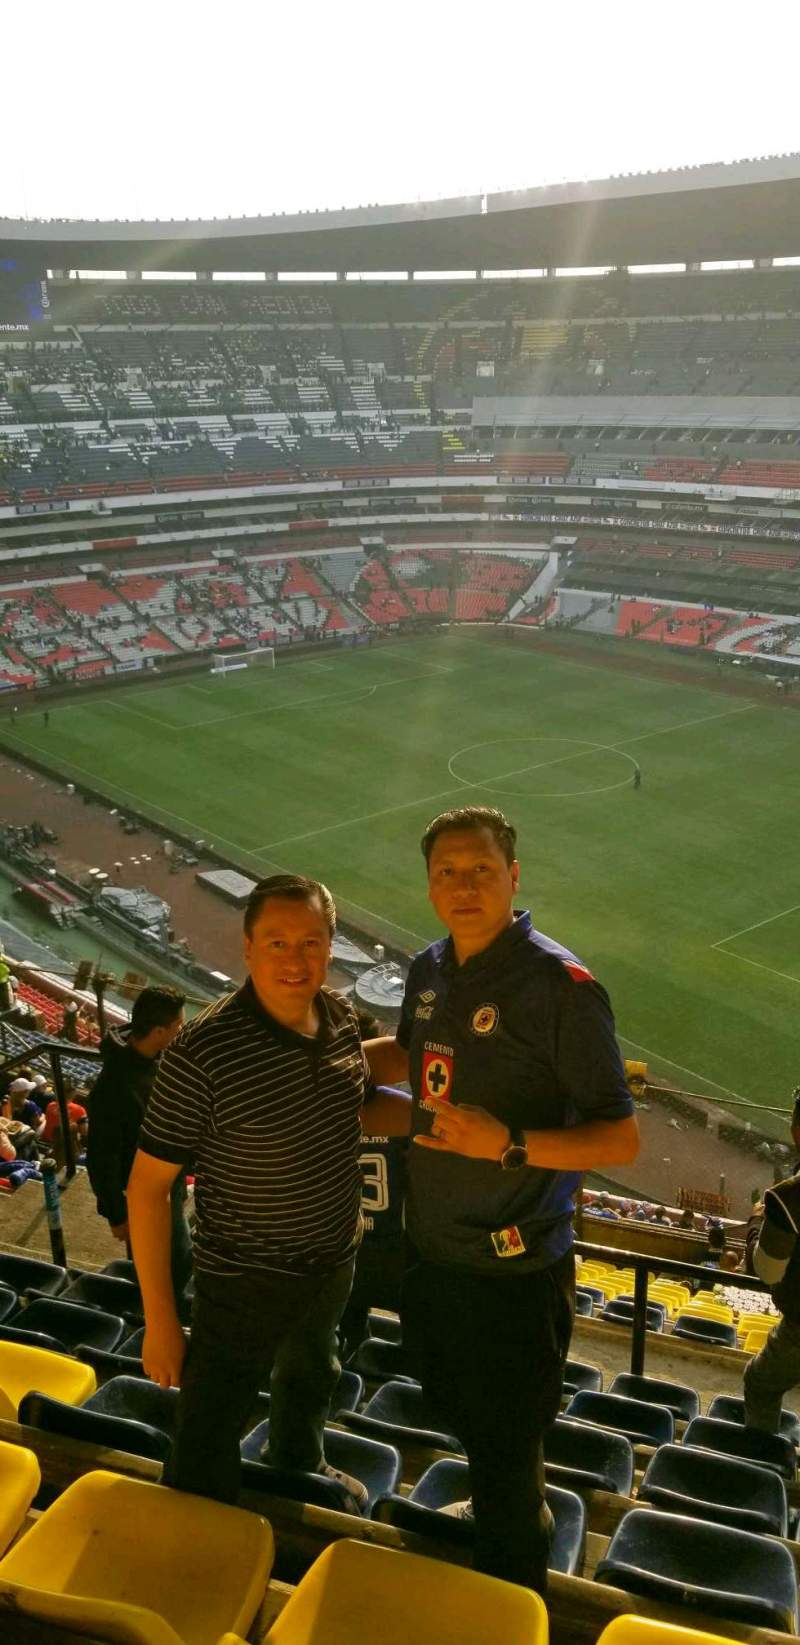 Seating view for Estadio Azteca Section 552 Row j Seat 20